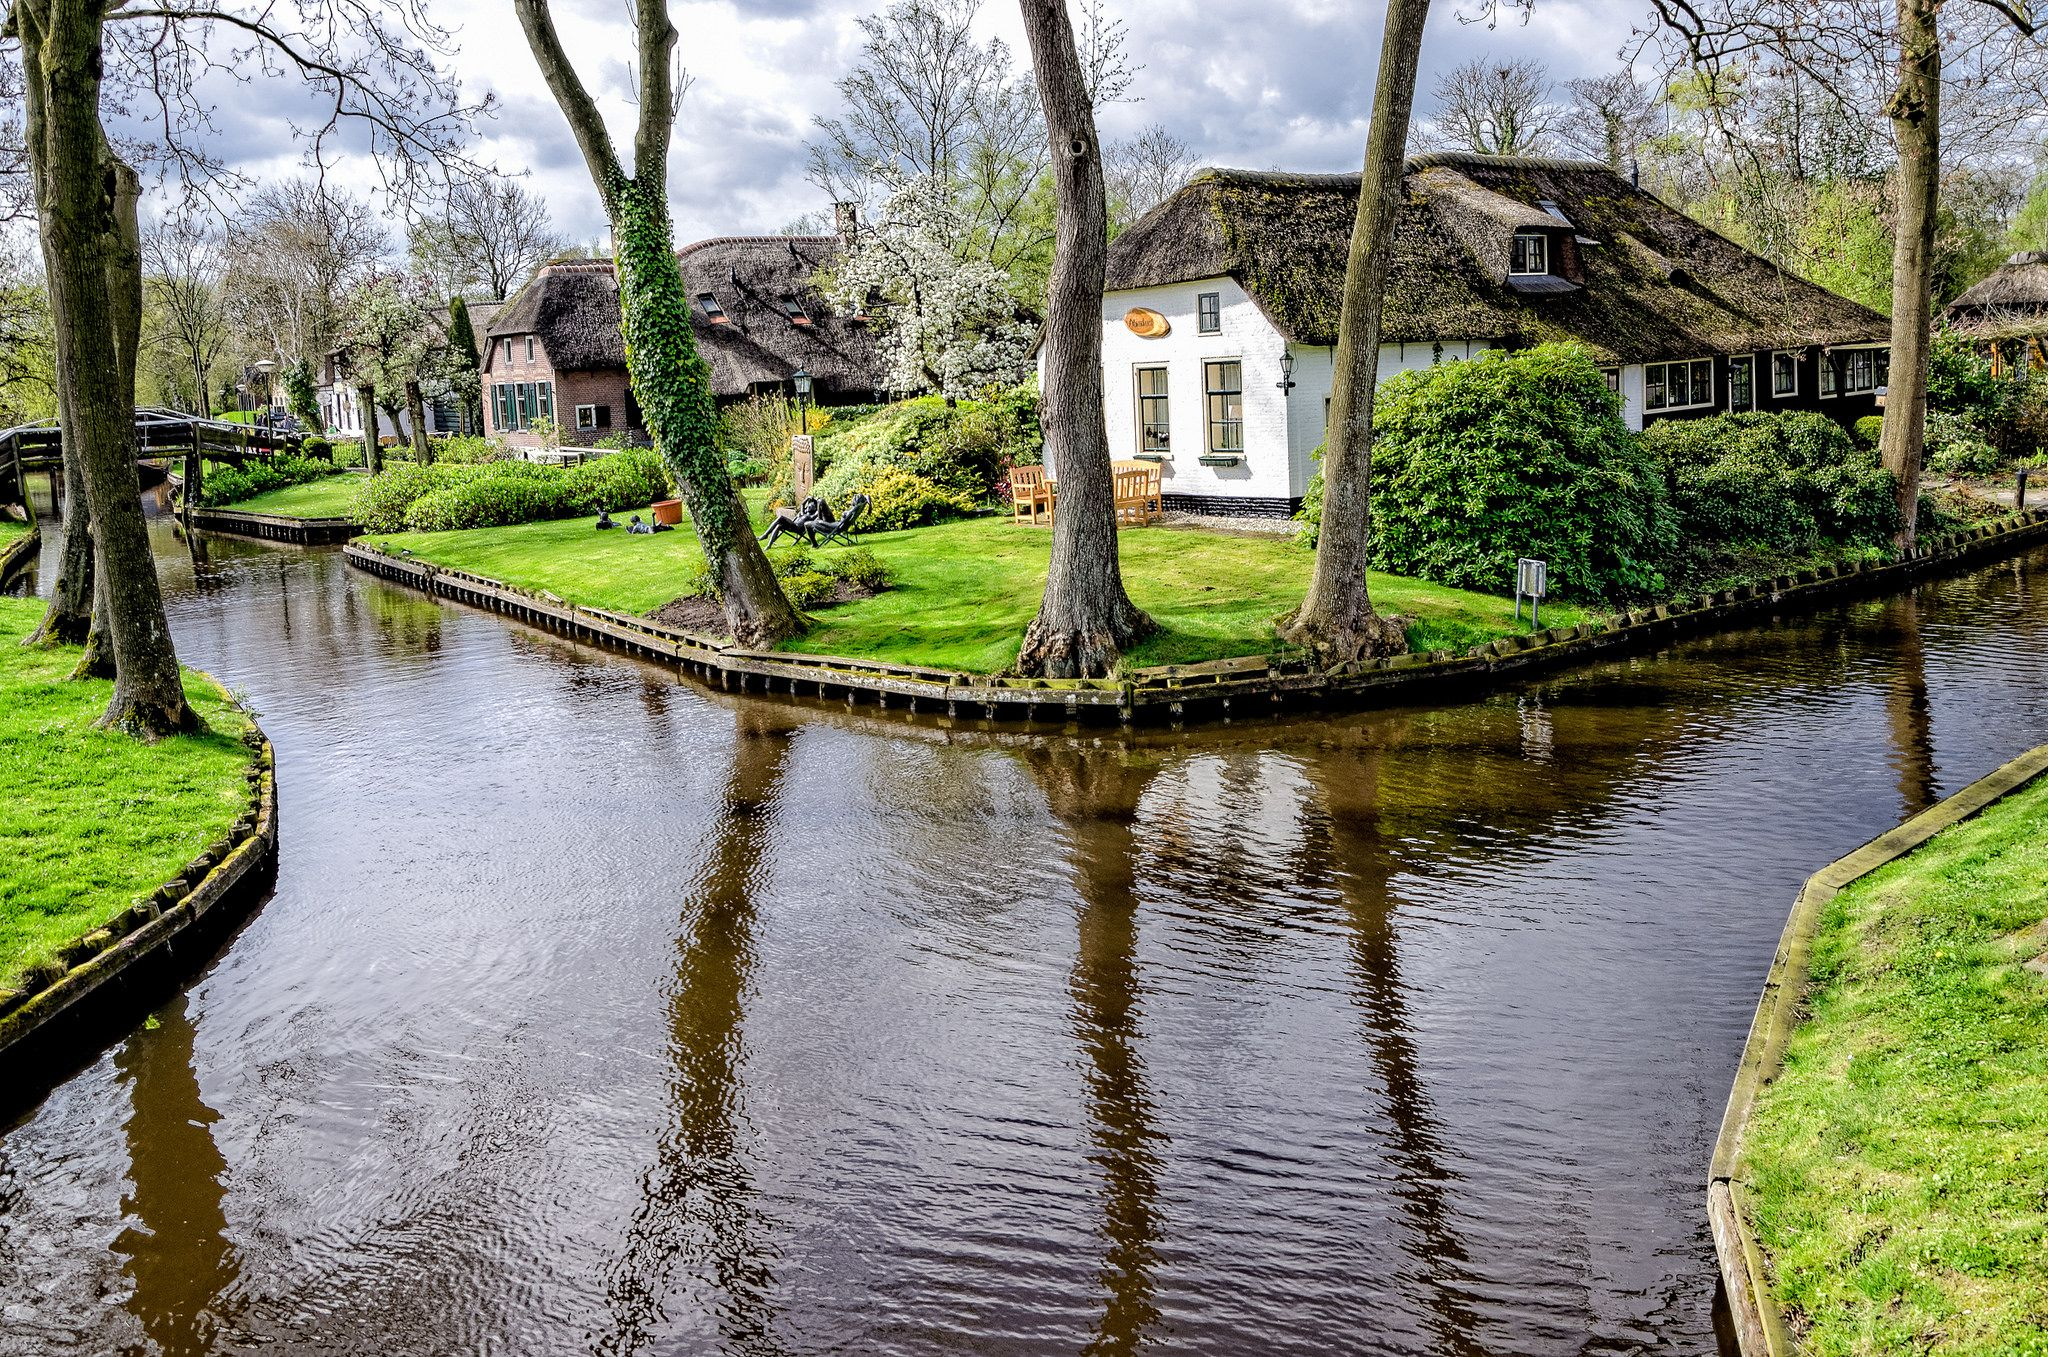 Wander into the Magical Netherlands